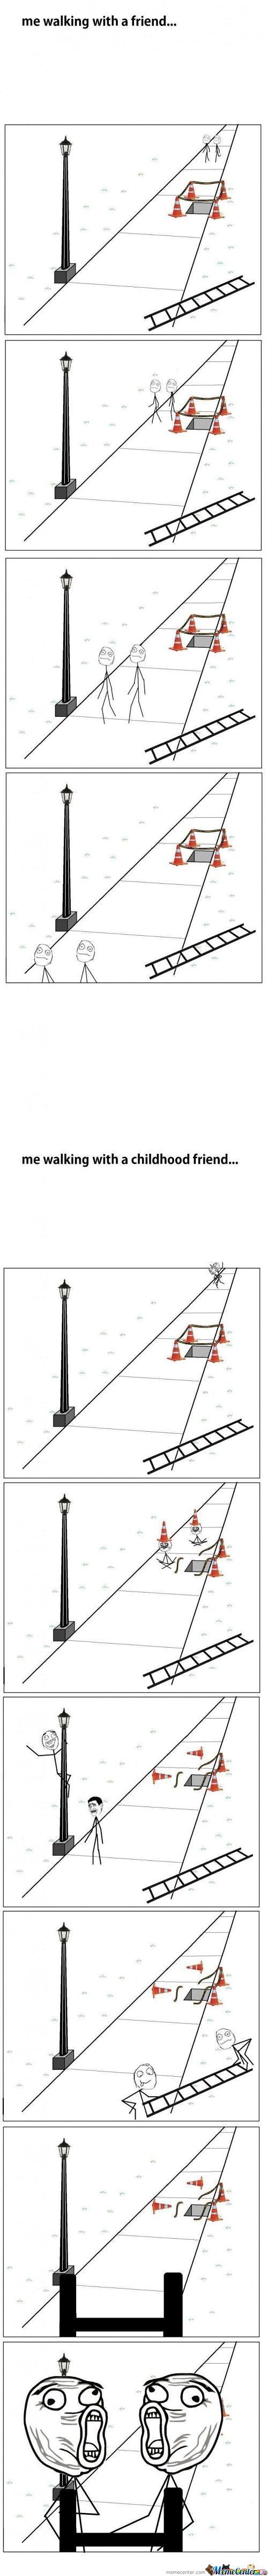 Difference Between Friends And Friends From Childhood !!